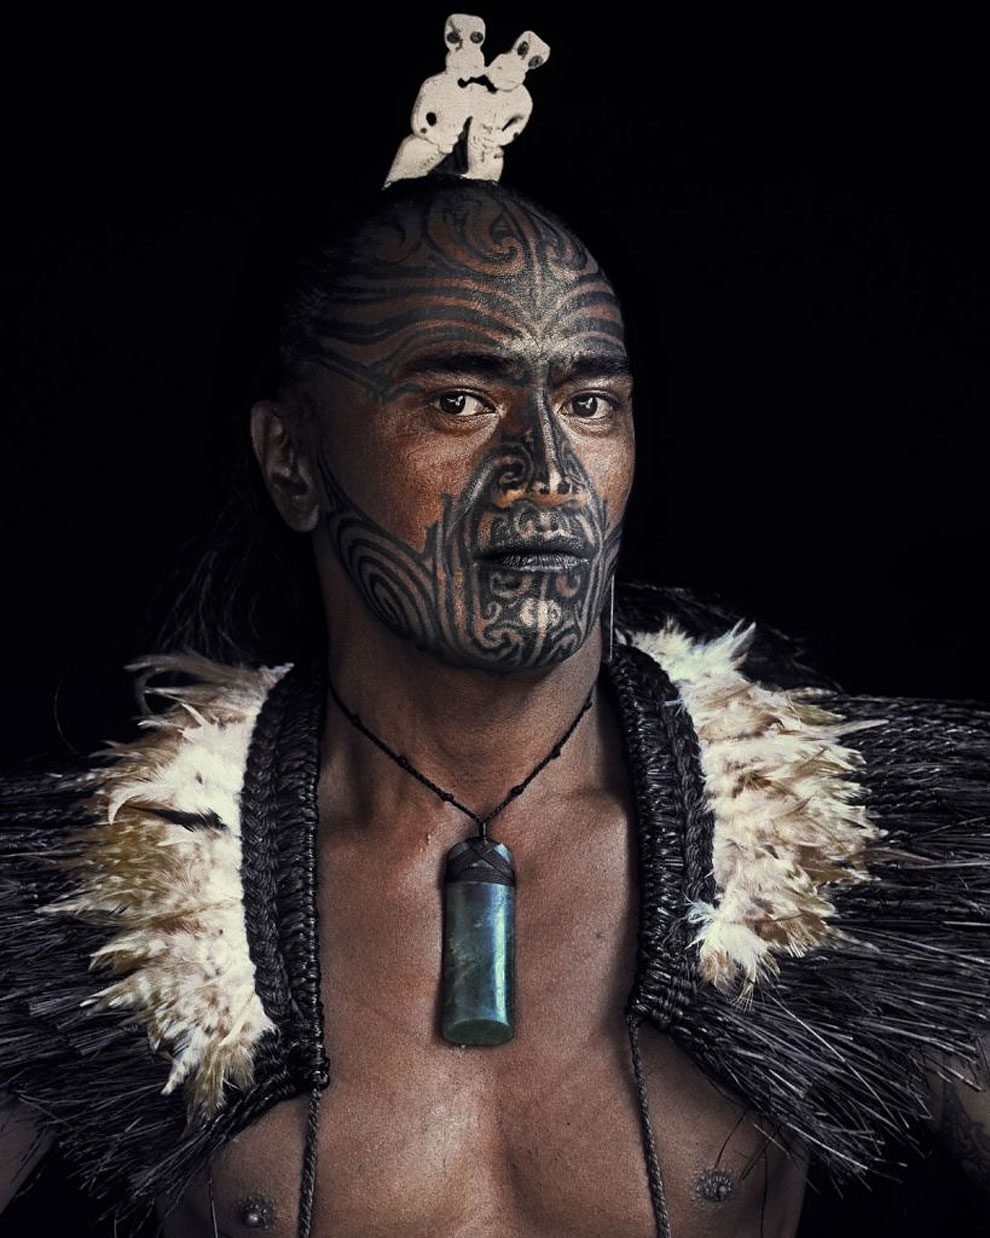 tribu-indigeni-mondo-fotografia-before-they-pass-away-jimmy-nelson-30